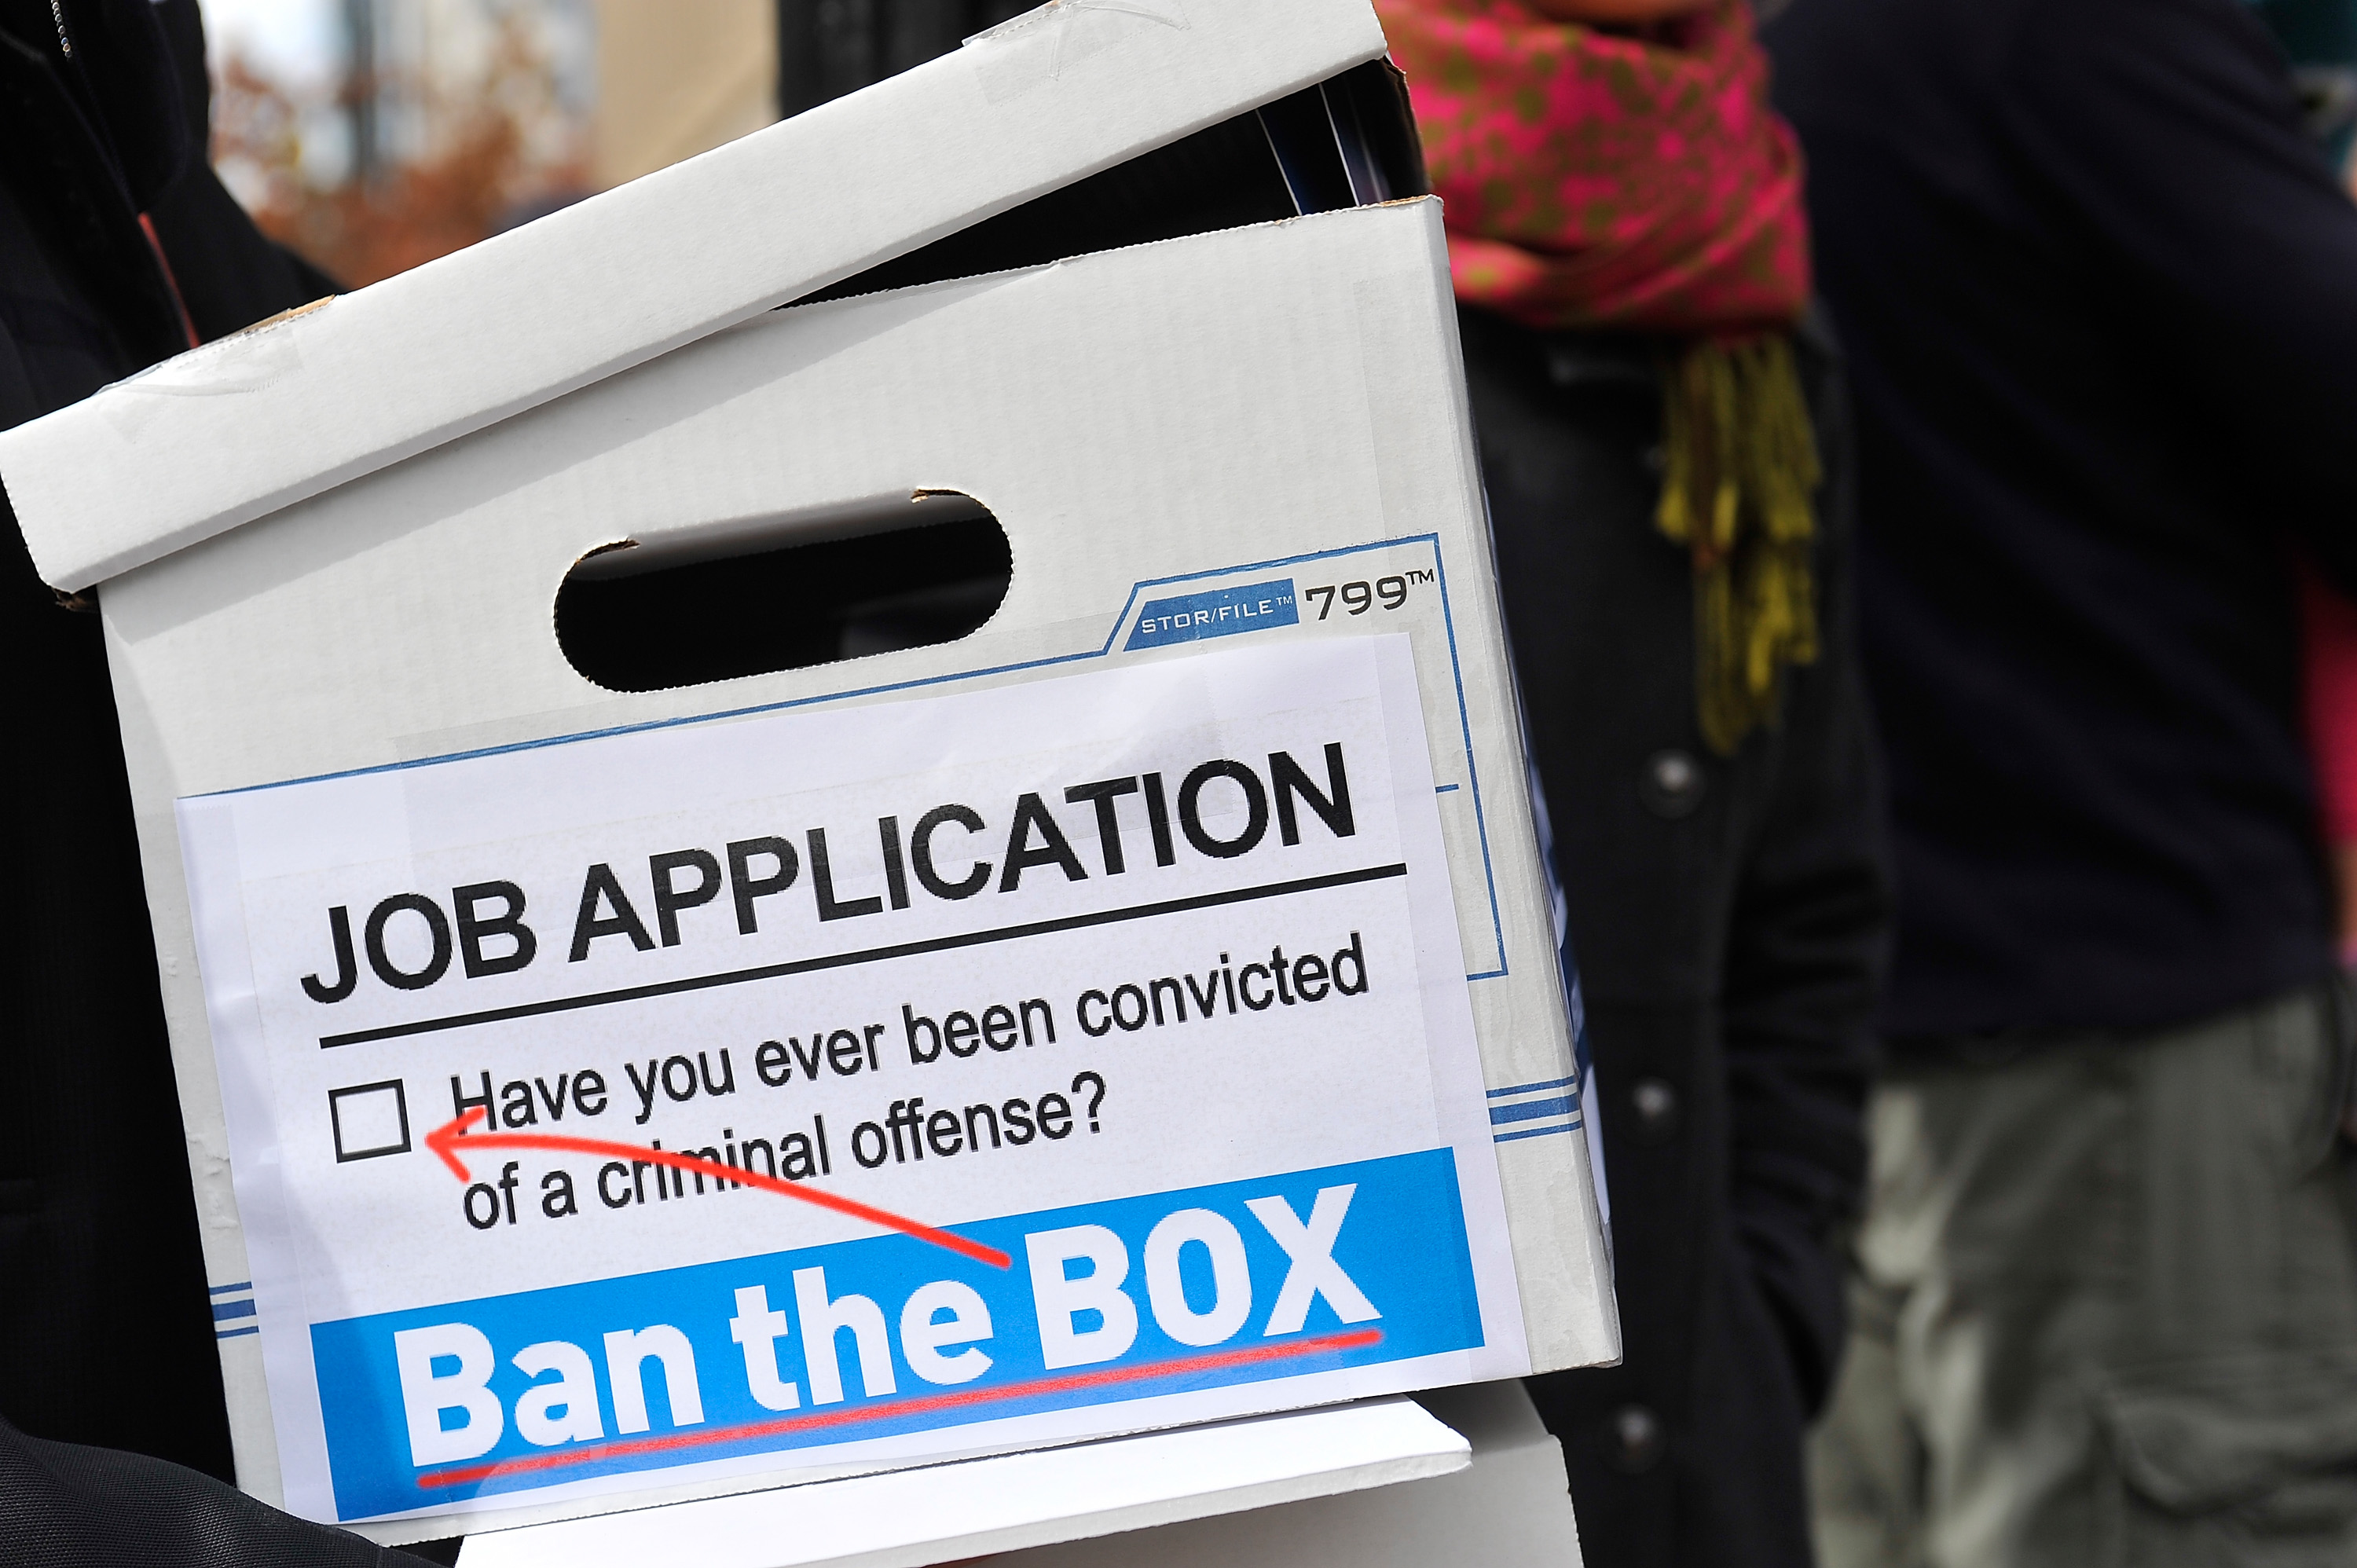 Outreach materials at a press conference for the Ban The Box Petition Delivery to The White House in Washington, D.C., on Oct. 26, 2015.